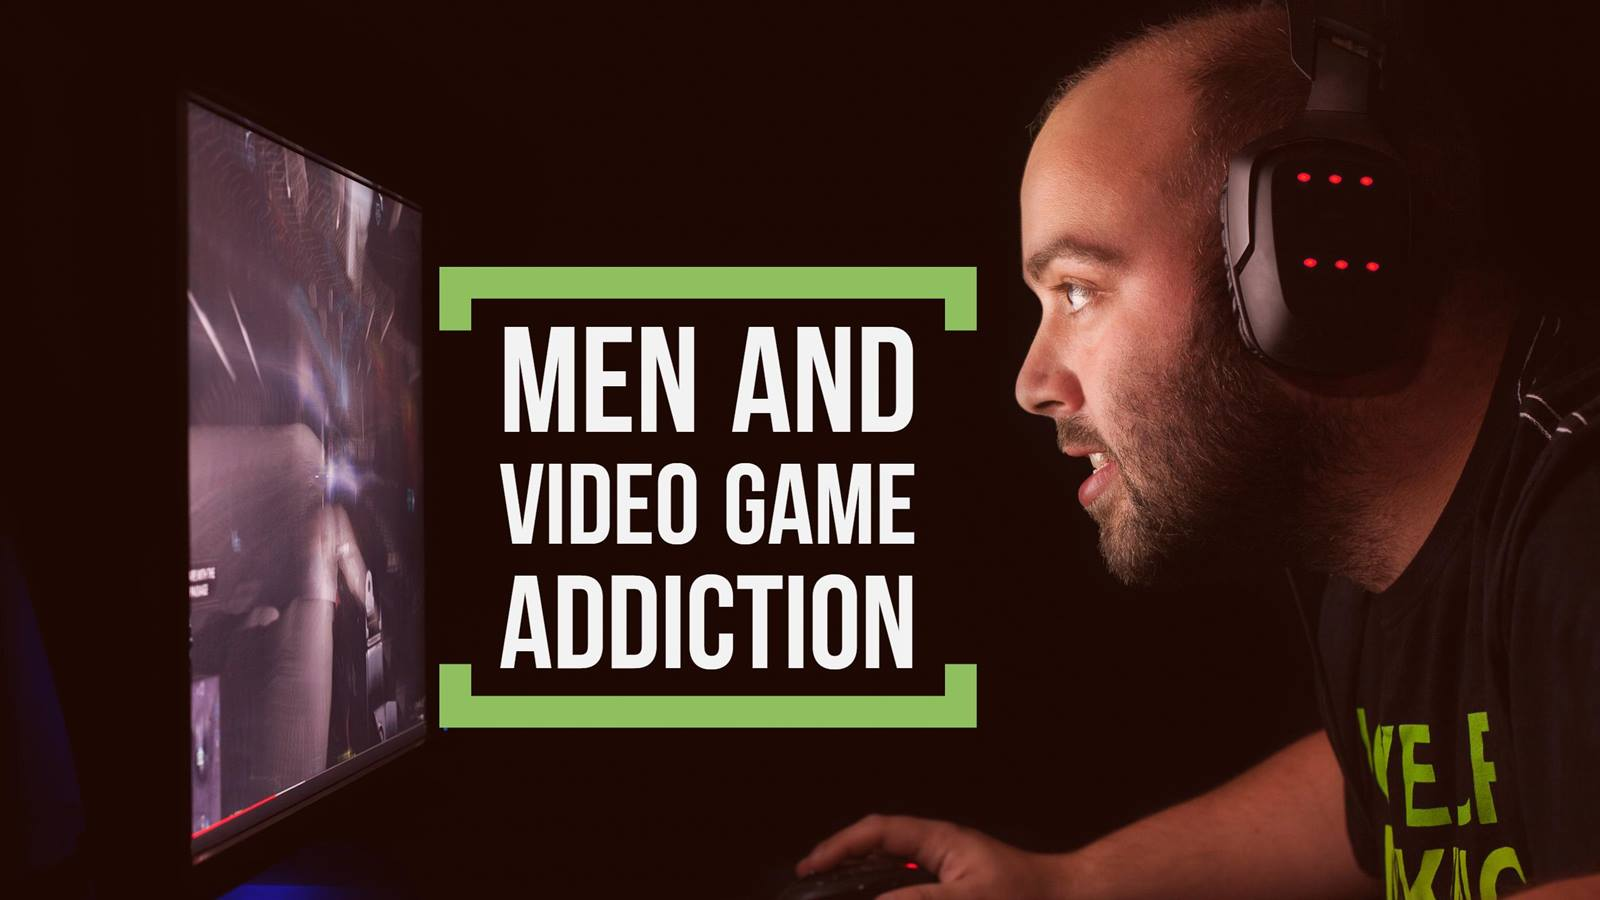 Video Game Addiction A Growing Health Problem For Men